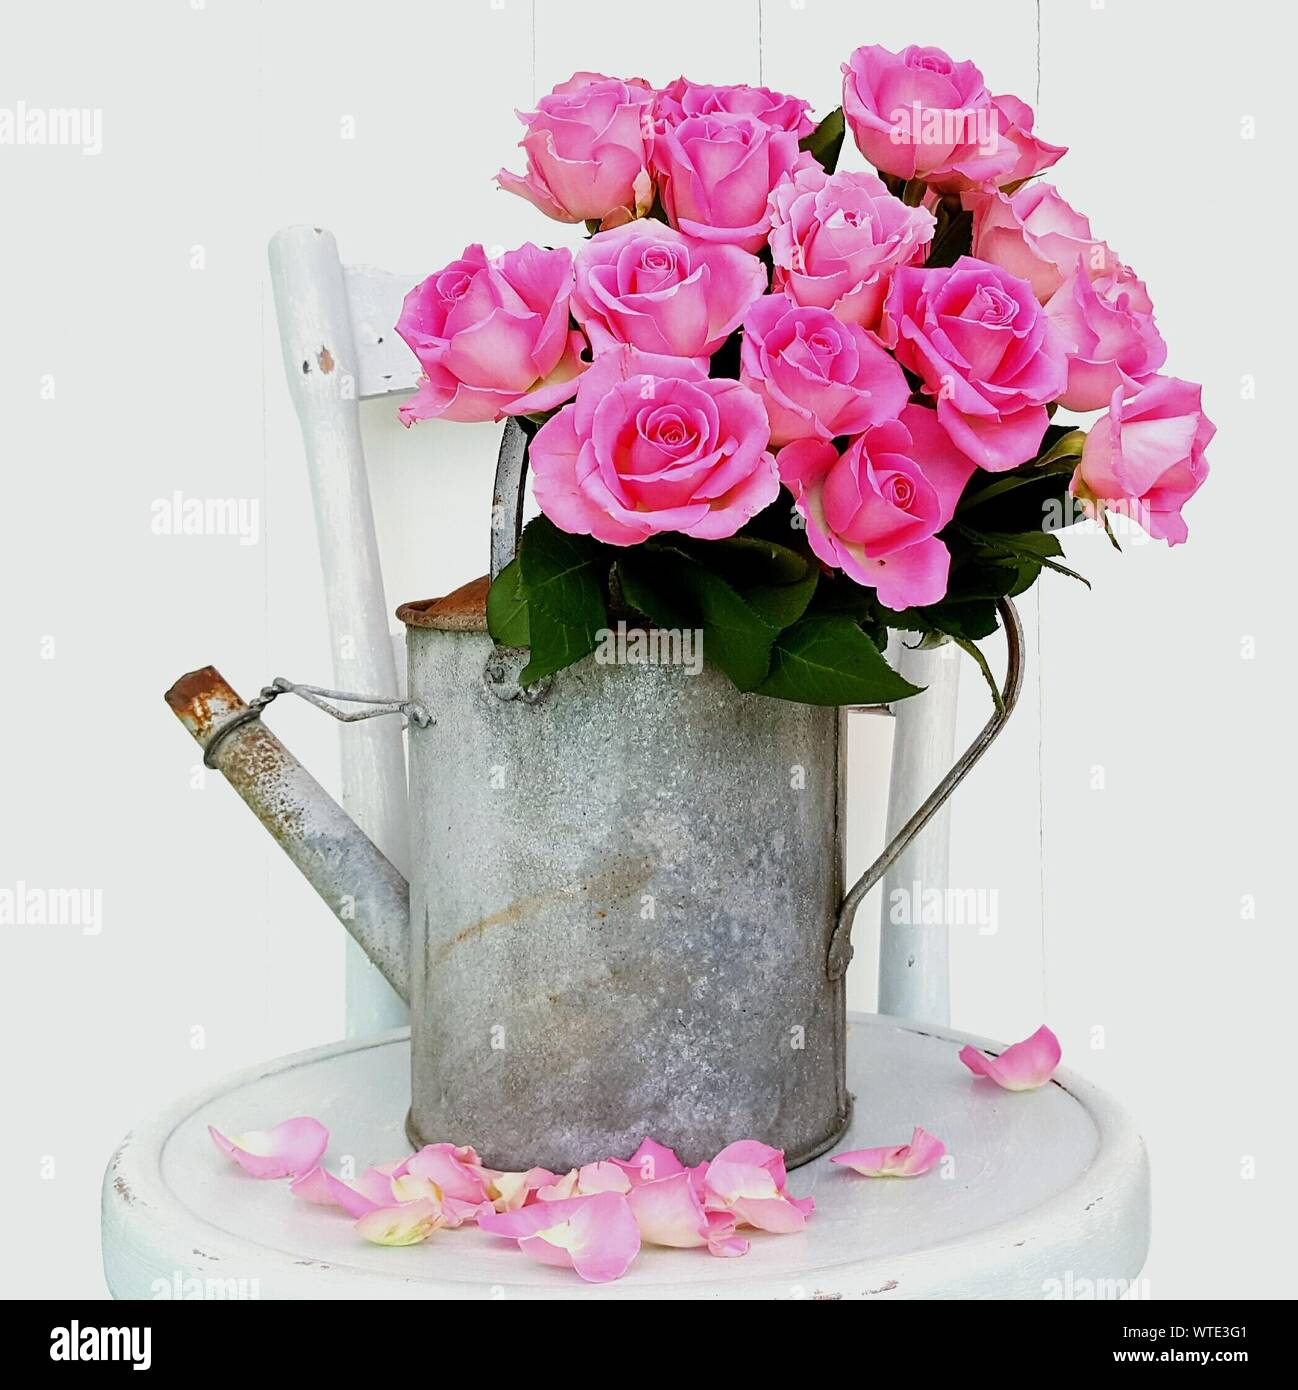 Close-up Of Pink Roses In Watering Can Against White Background Stock Photo